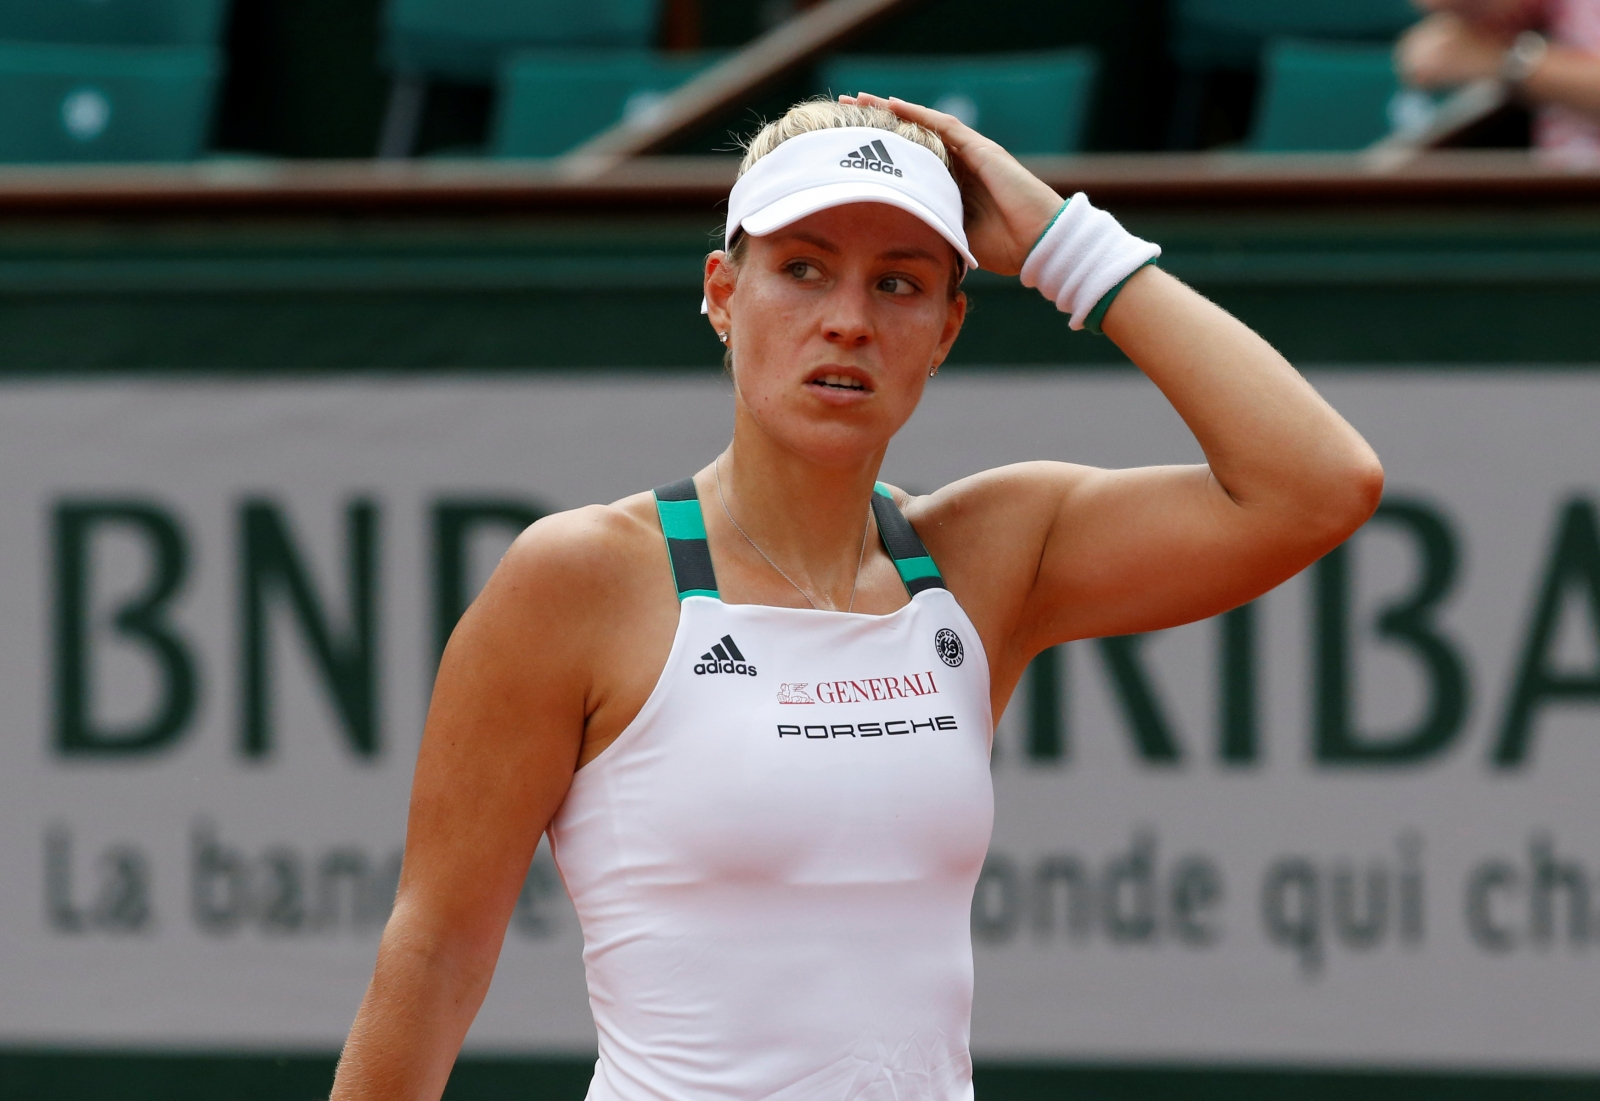 Kerber makes unwanted history with immediate Roland Garros exit